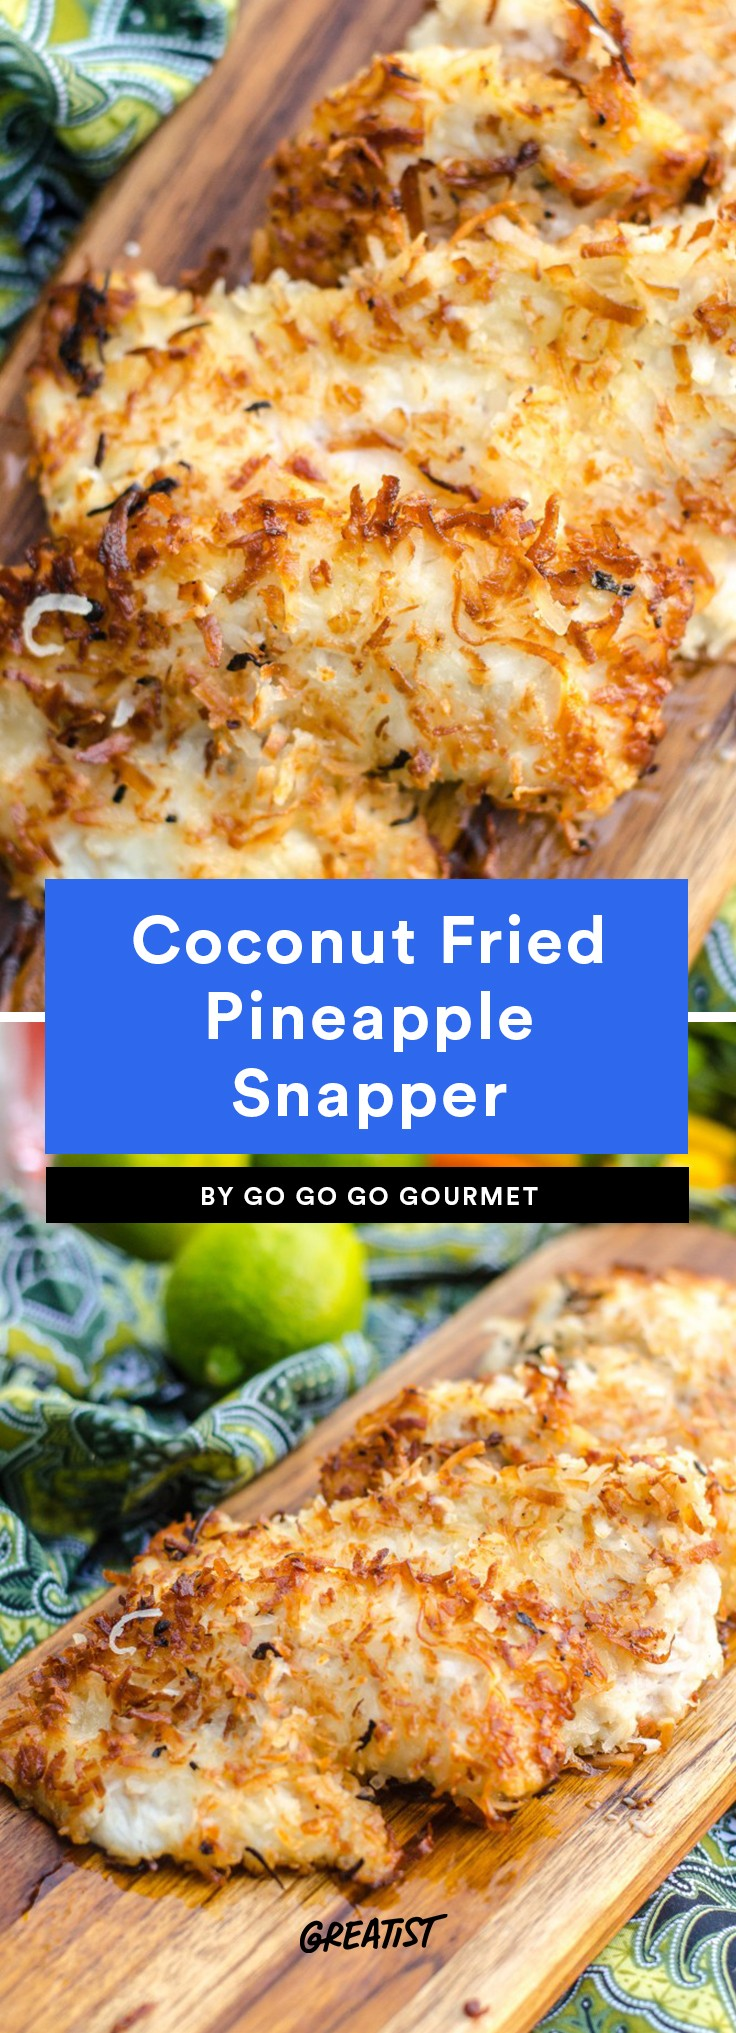 Coconut Fried Pineapple Snapper